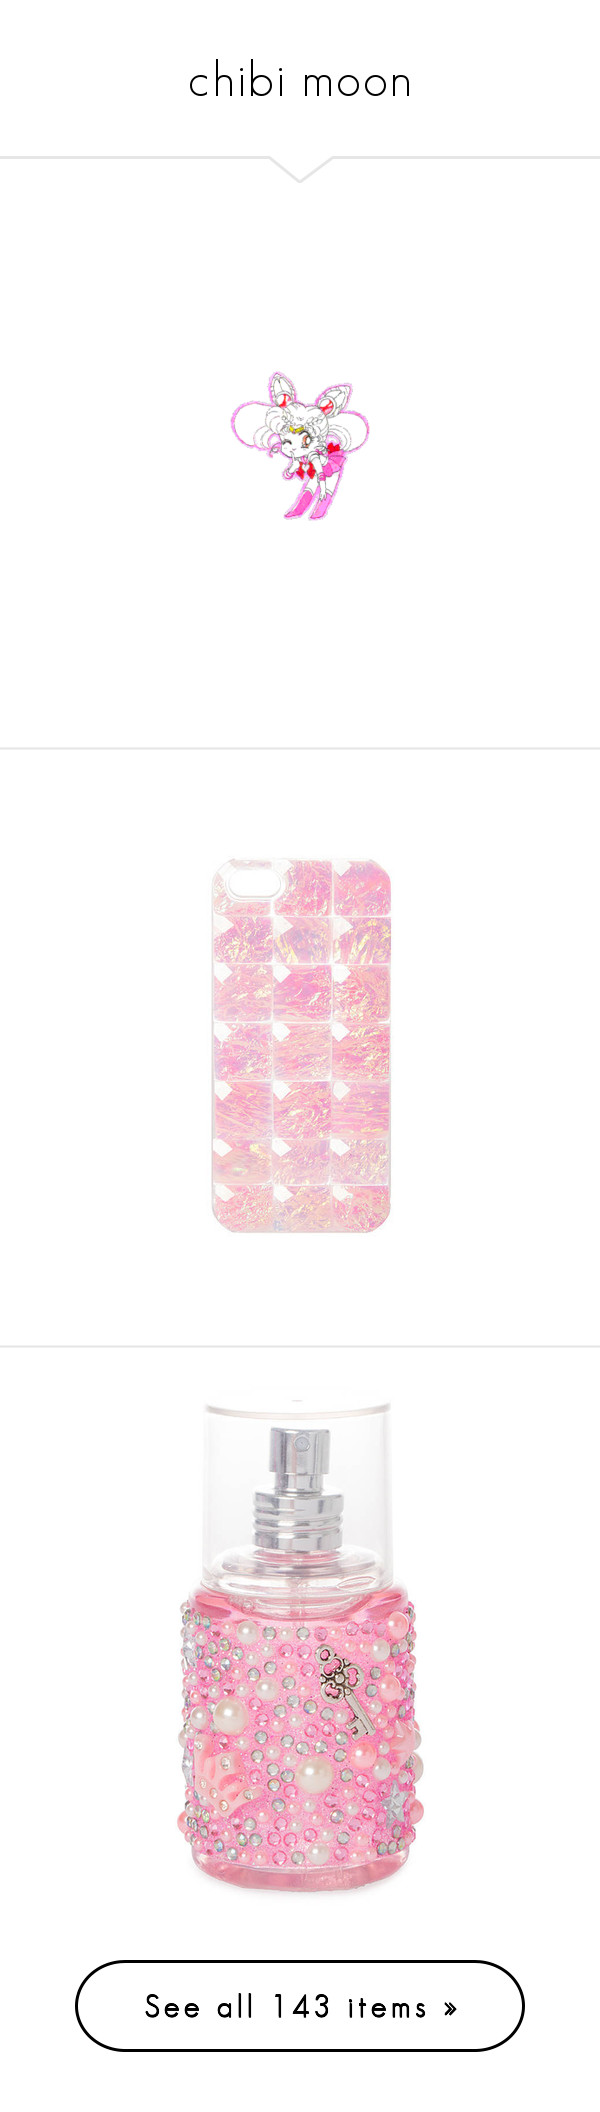 """chibi moon"" by patpotato ❤ liked on Polyvore featuring home, home decor, anime, fillers, sailor moon, characters, image, accessories, tech accessories and phone cases"